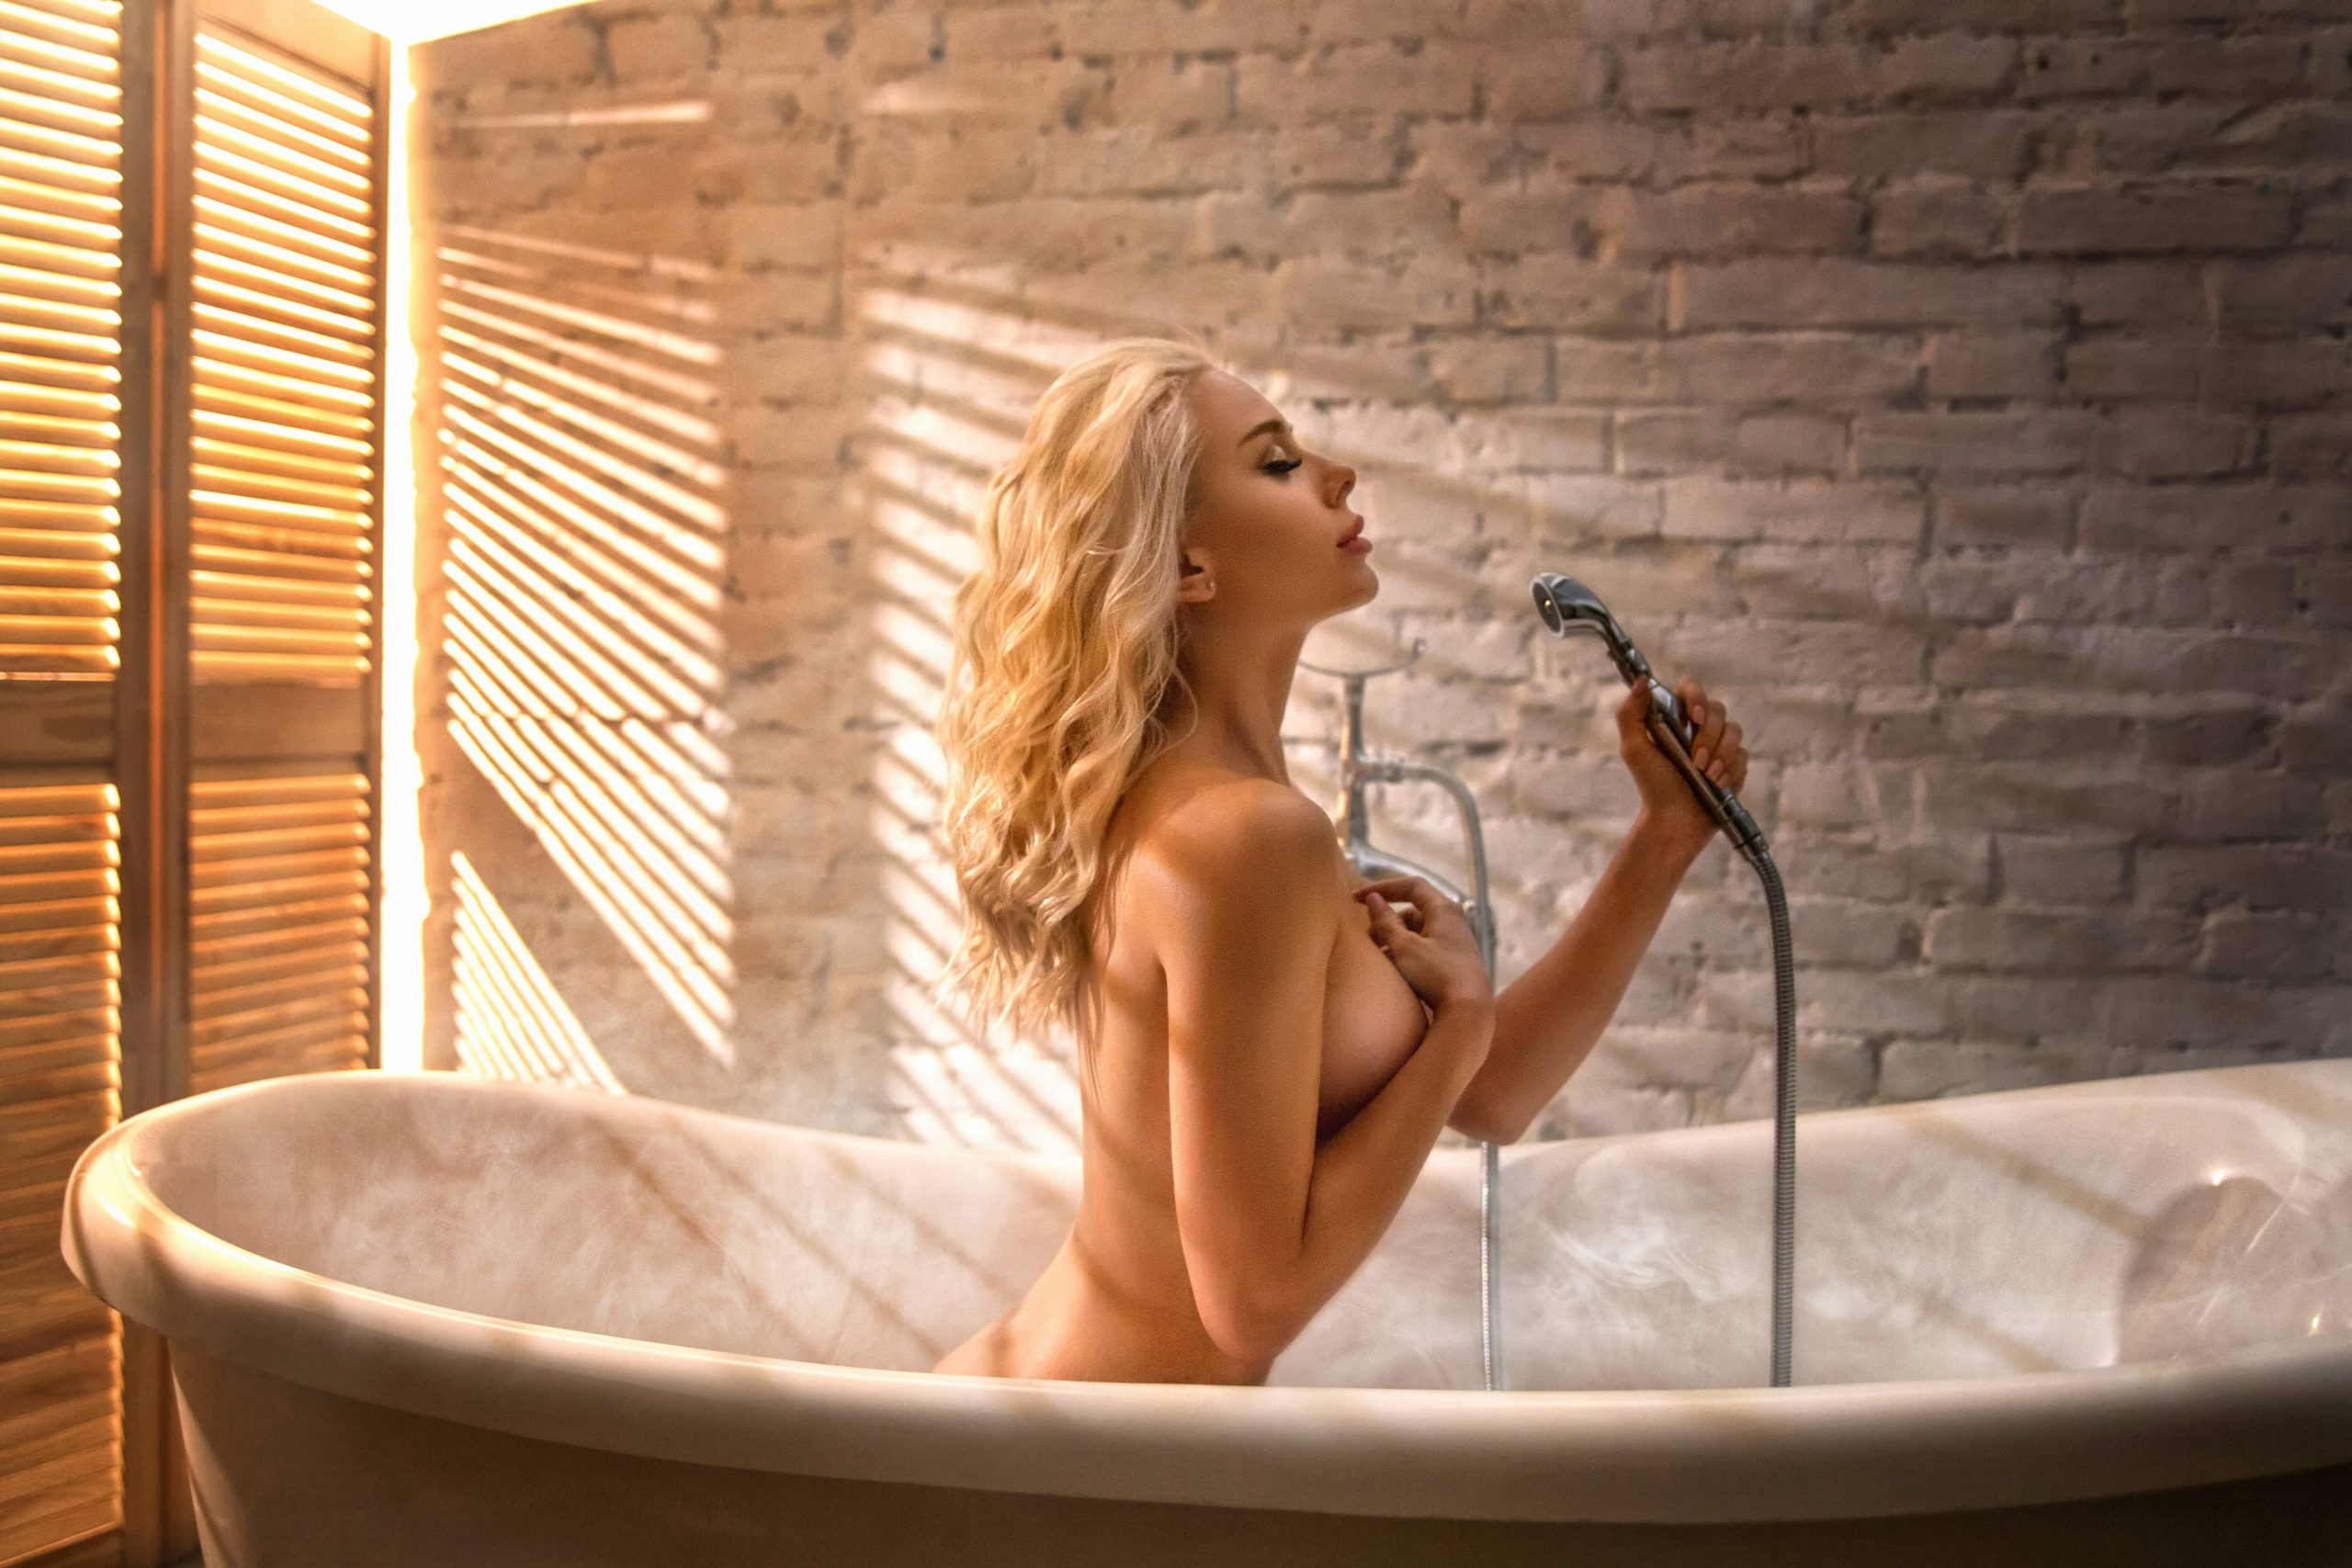 Erotic massage in the Jacuzzi «Water extravaganza»